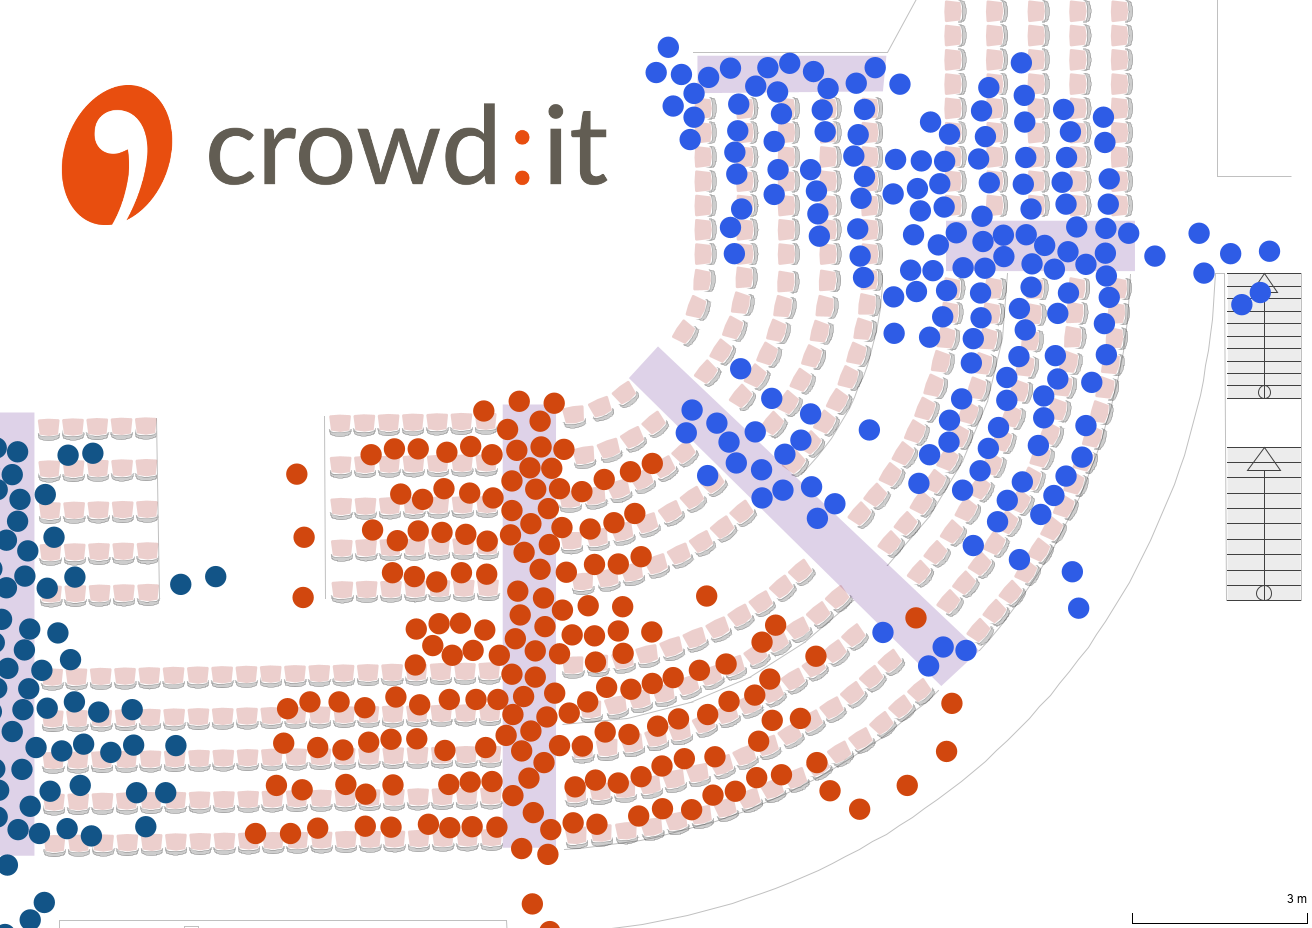 crowd:it